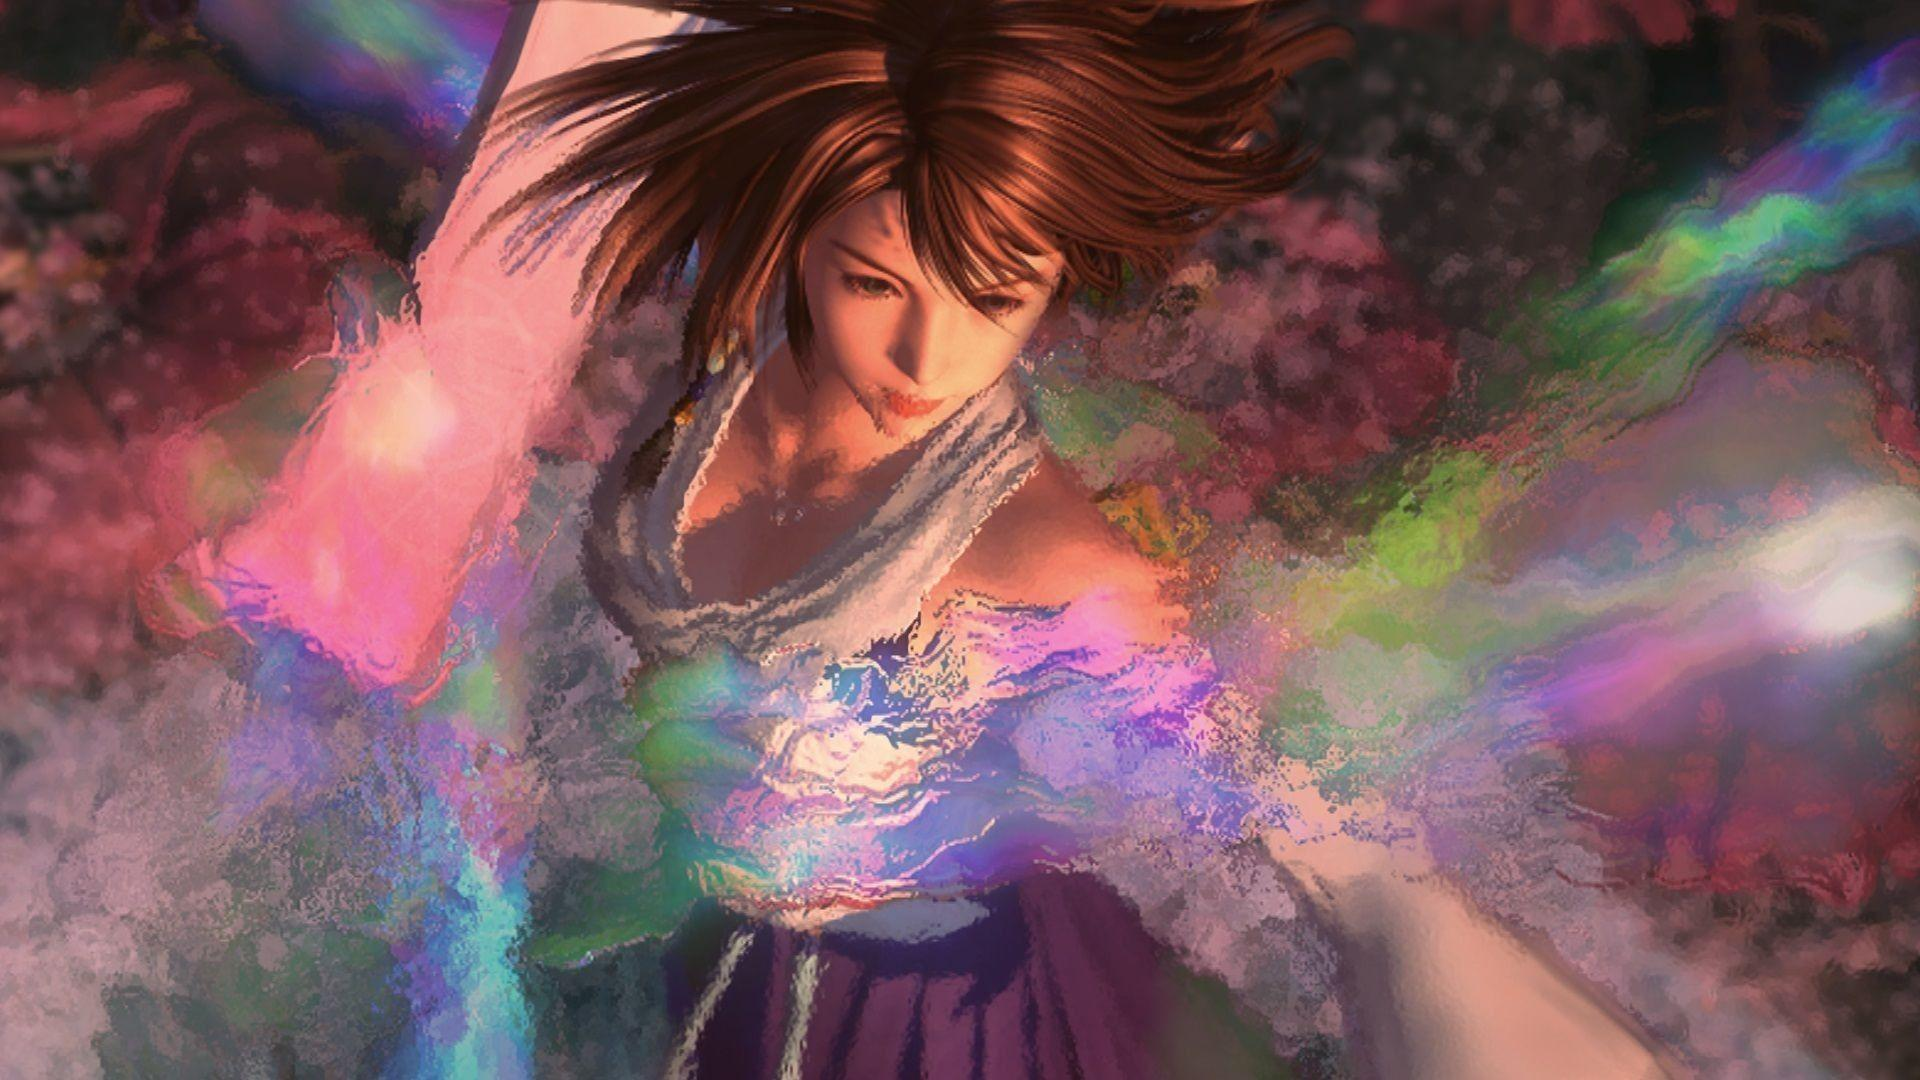 Final Fantasy X Wallpapers Yuna Wallpaper Cave